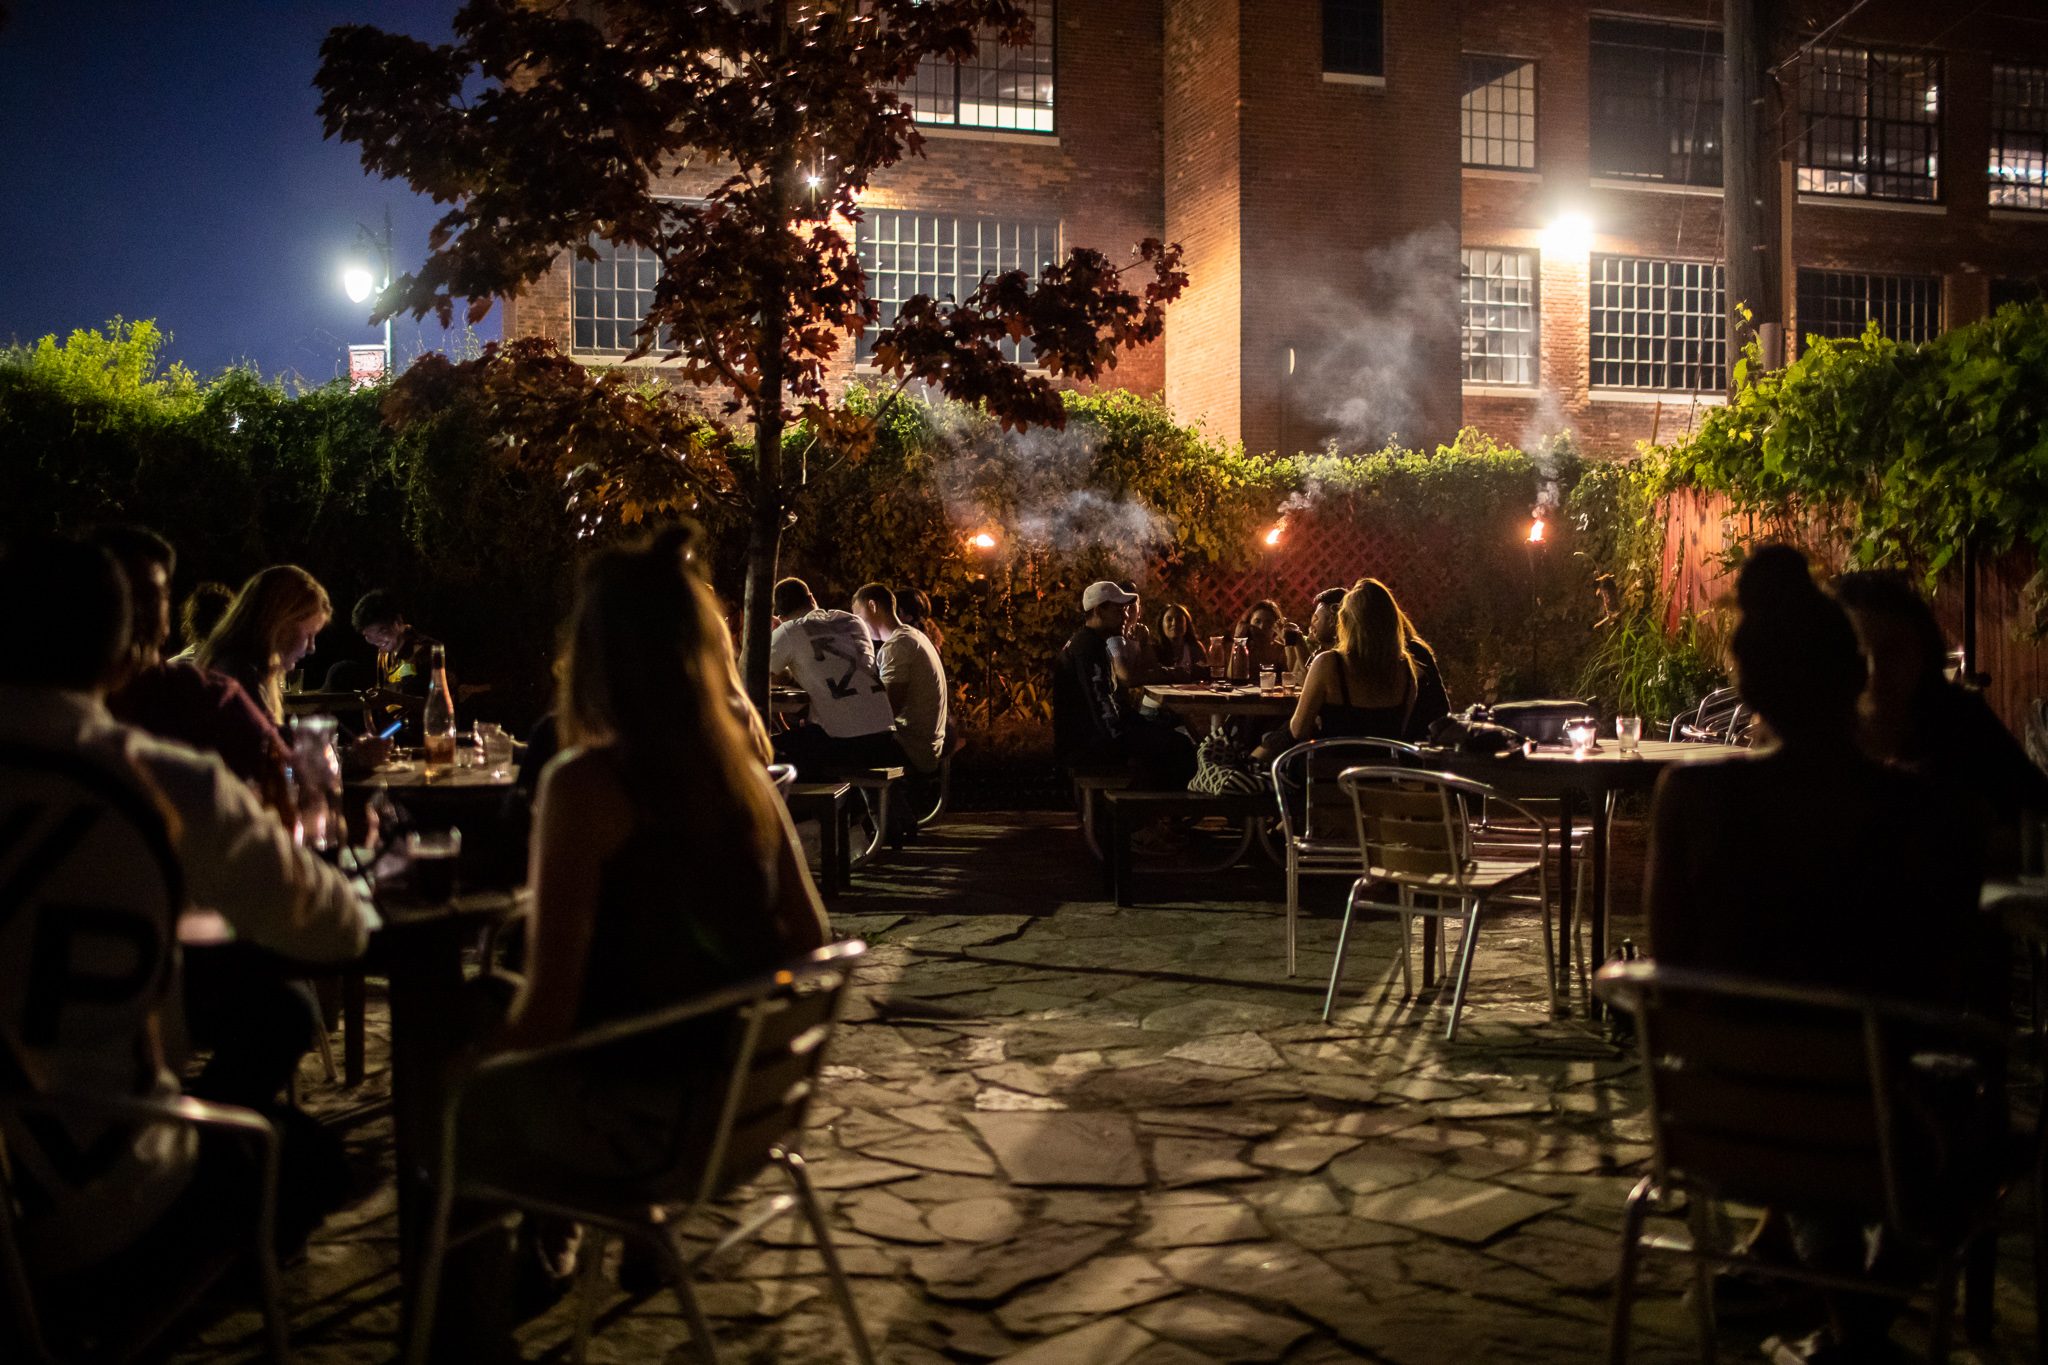 it's twilight on the Motor City Wine patio and three tiki torches near the ivy-covered fence cast a light over the picnic tables and round patio tables filled with customers drinking wine and talking.